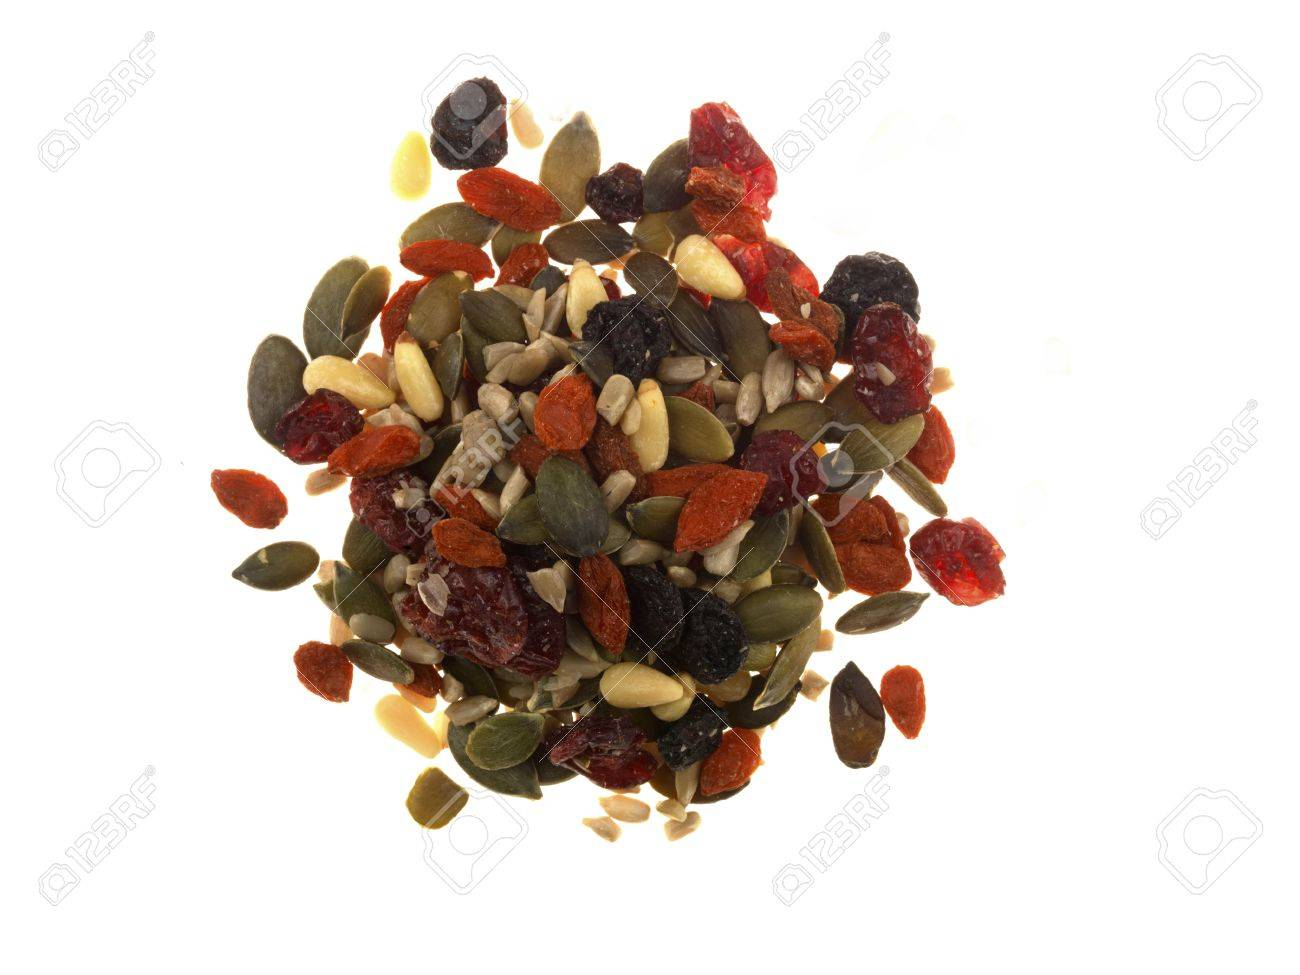 Dried Fruit with Seeds Stock Photo - 15696855